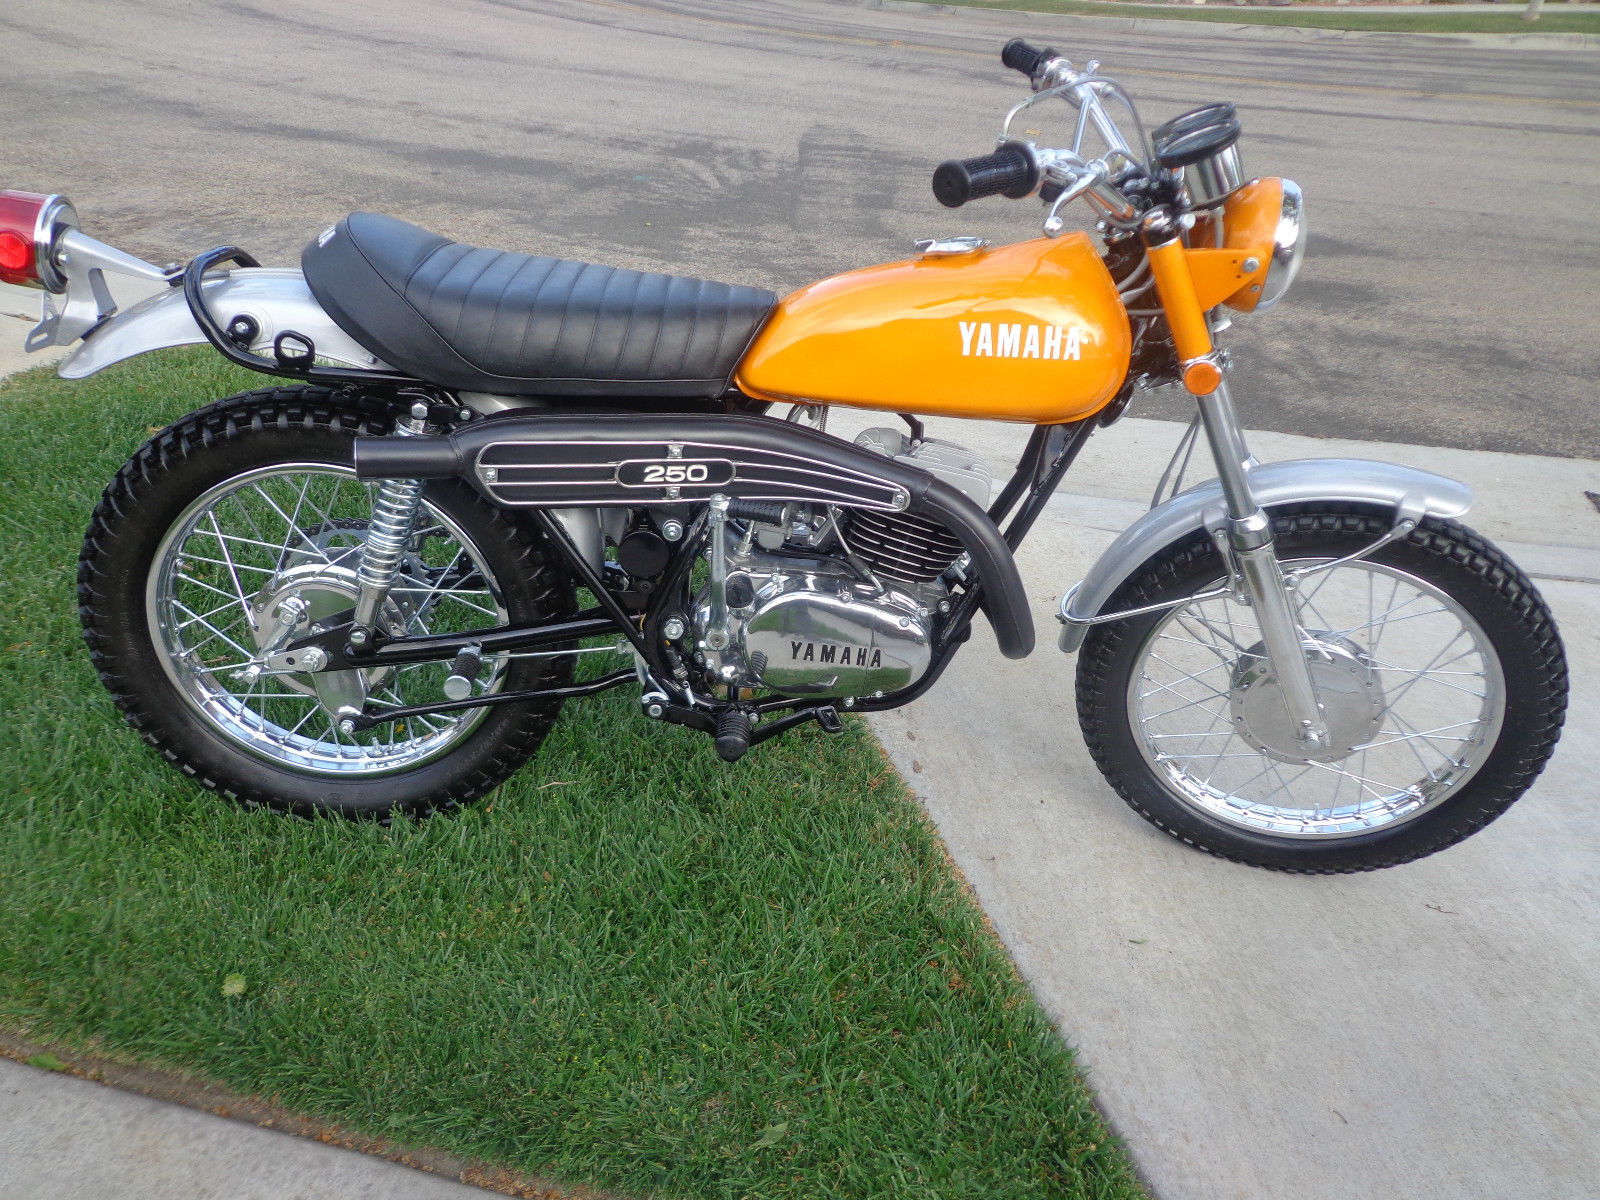 Wiring Diagram For 1987 Honda Goldwing 1200 A also Yamaha Dt 125 Along With Wiring Diagram In furthermore Last furthermore 1974 Honda Sl 70 also Honda Atv 125cc Wiring Diagram. on honda xl 125 wiring diagram